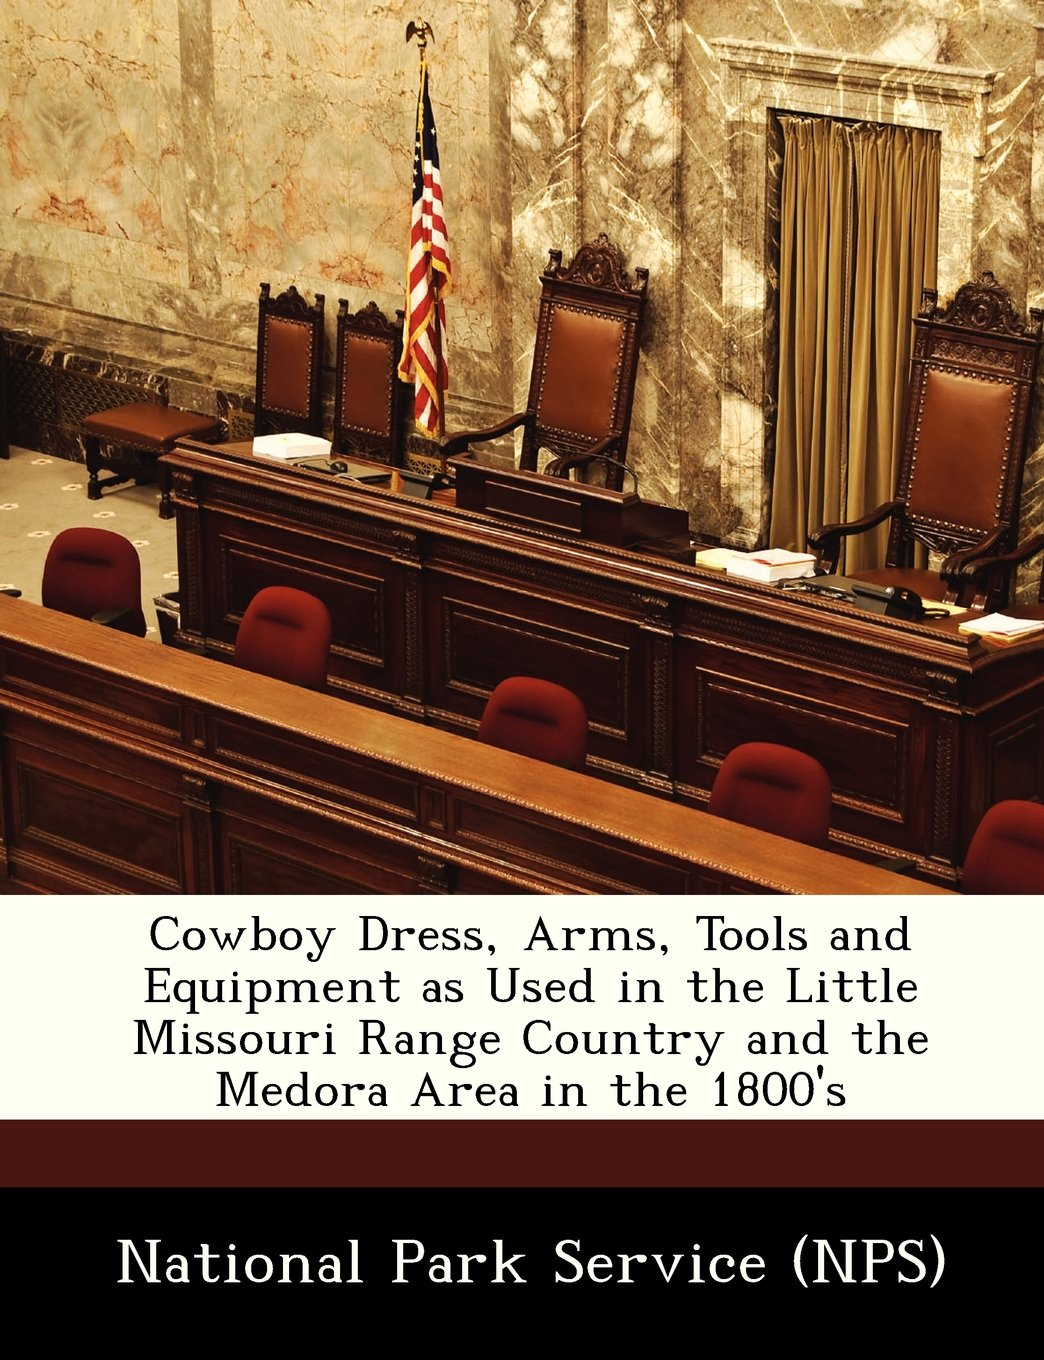 Cowboy Dress, Arms, Tools and Equipment as Used in the Little Missouri Range Country and the Medora Area in the 1800's PDF